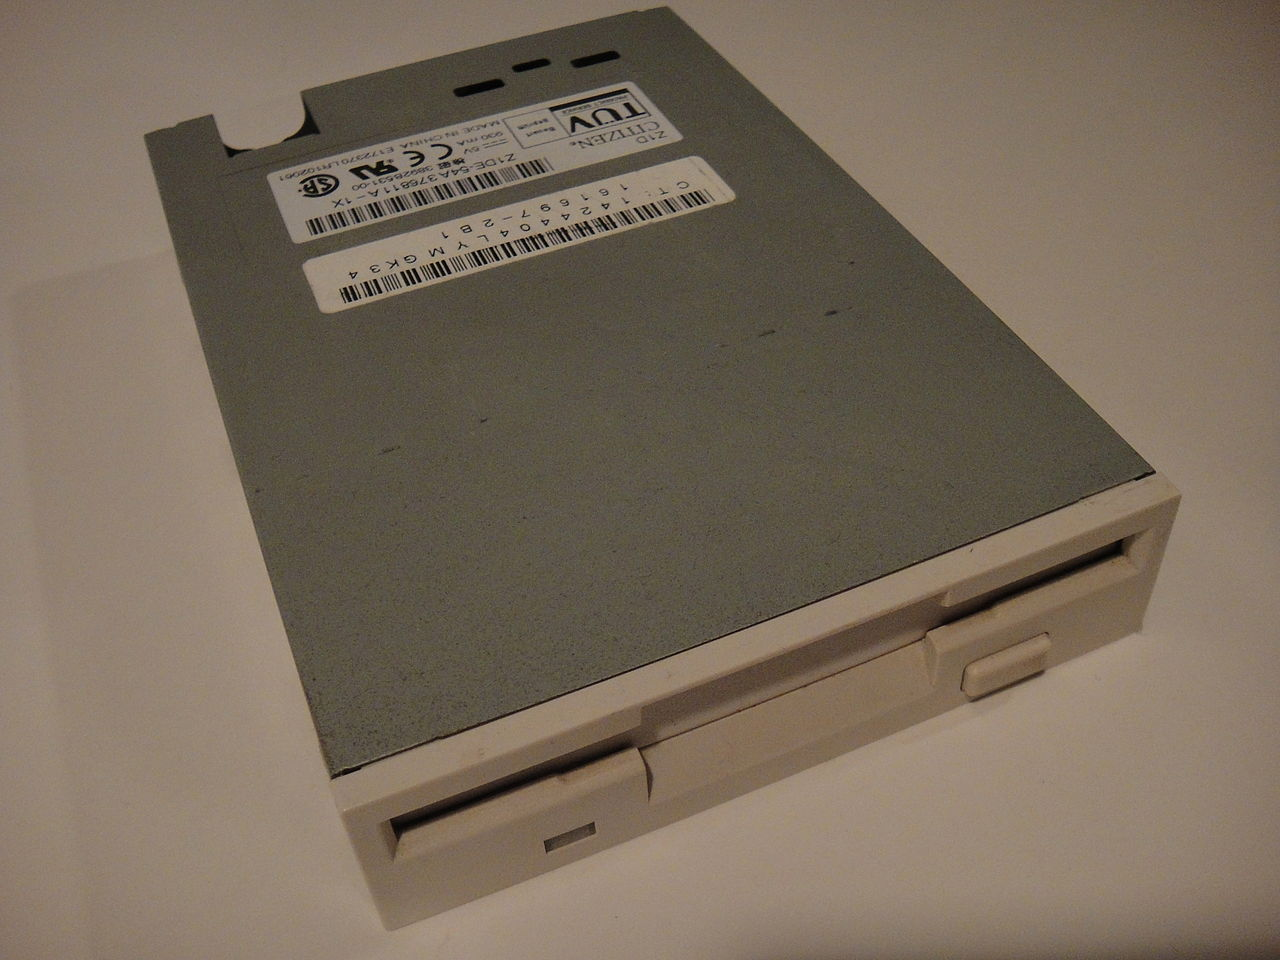 file 3 5 inch floppy disk drive 2 jpg wikimedia commons. Black Bedroom Furniture Sets. Home Design Ideas